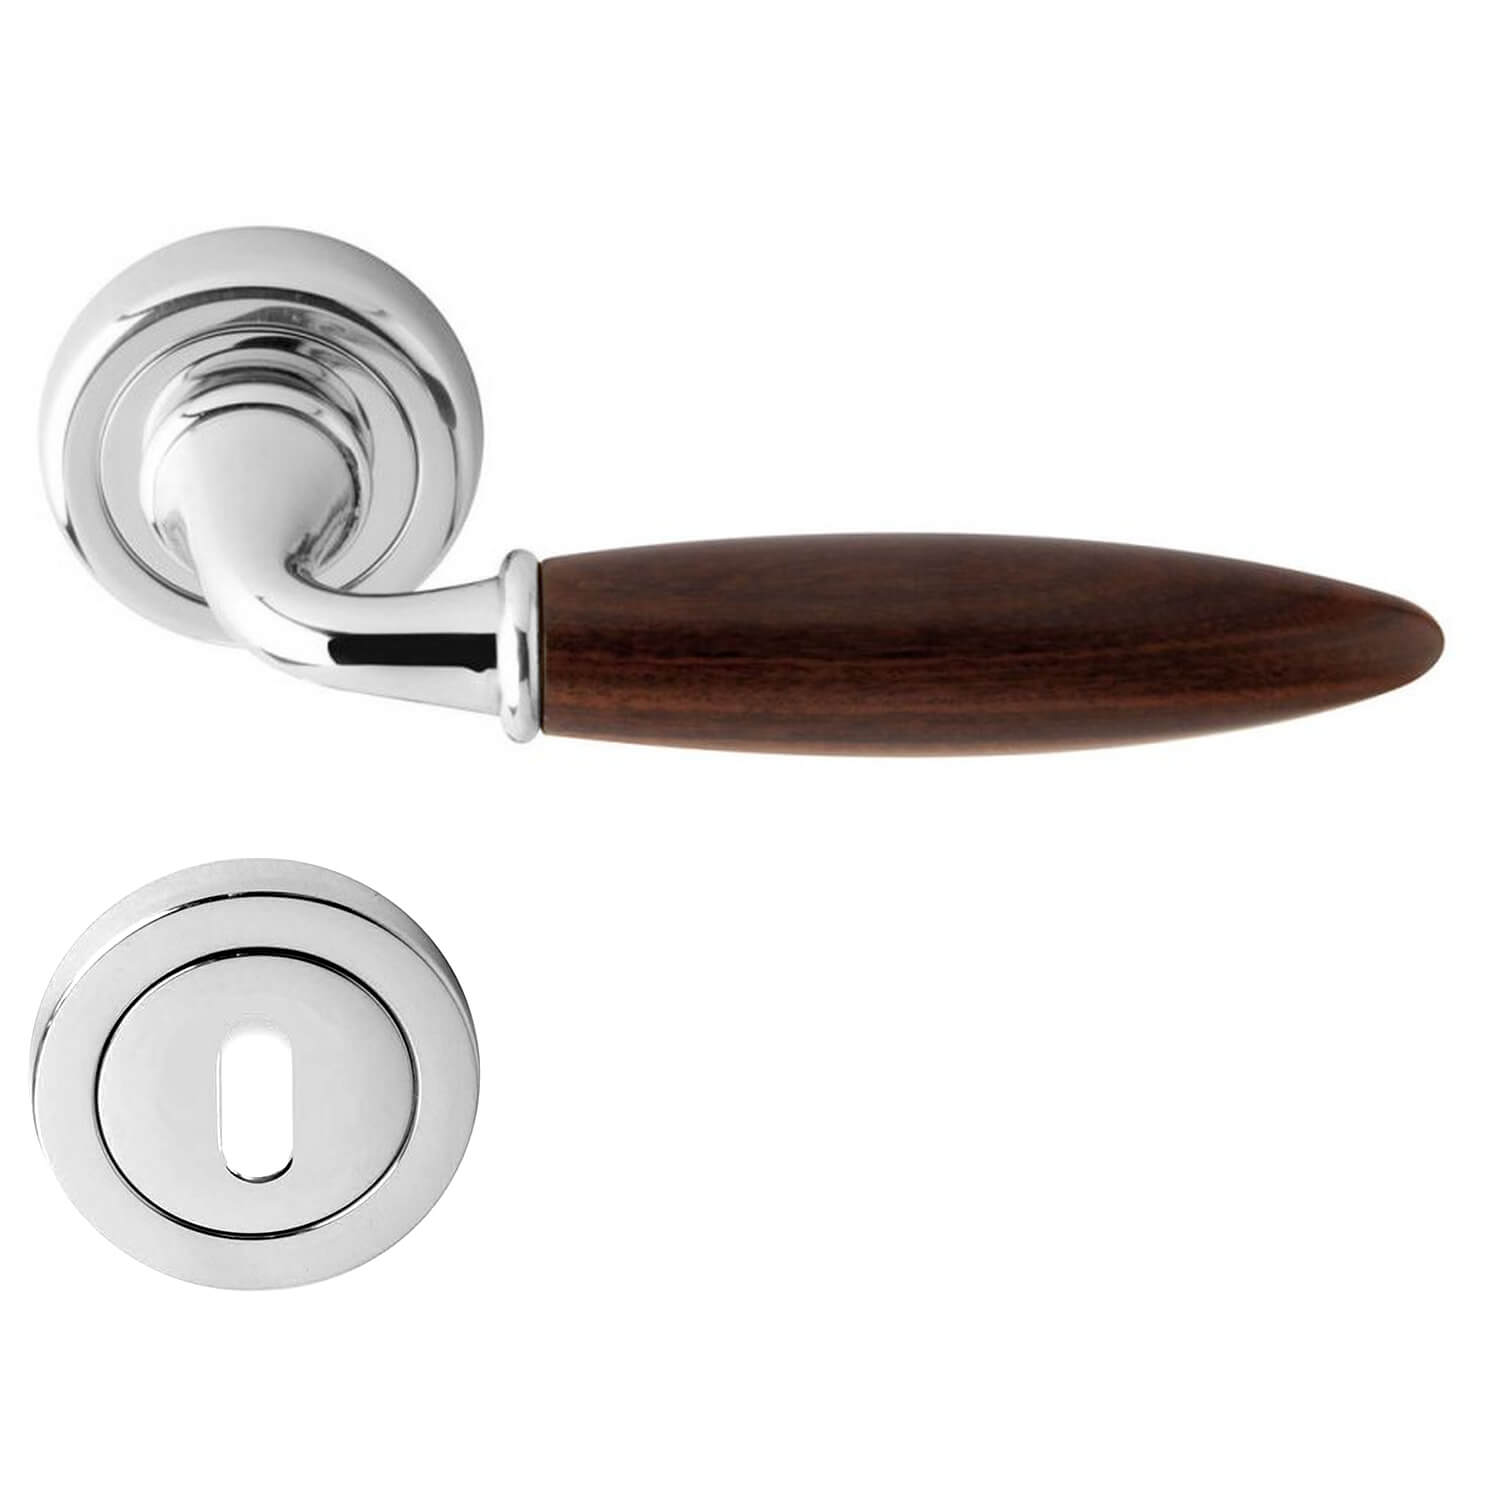 style or door plus gh cozy fixtures how glass knobs interior add brushed satin oiled the in nickel doorknobs handles light value frame